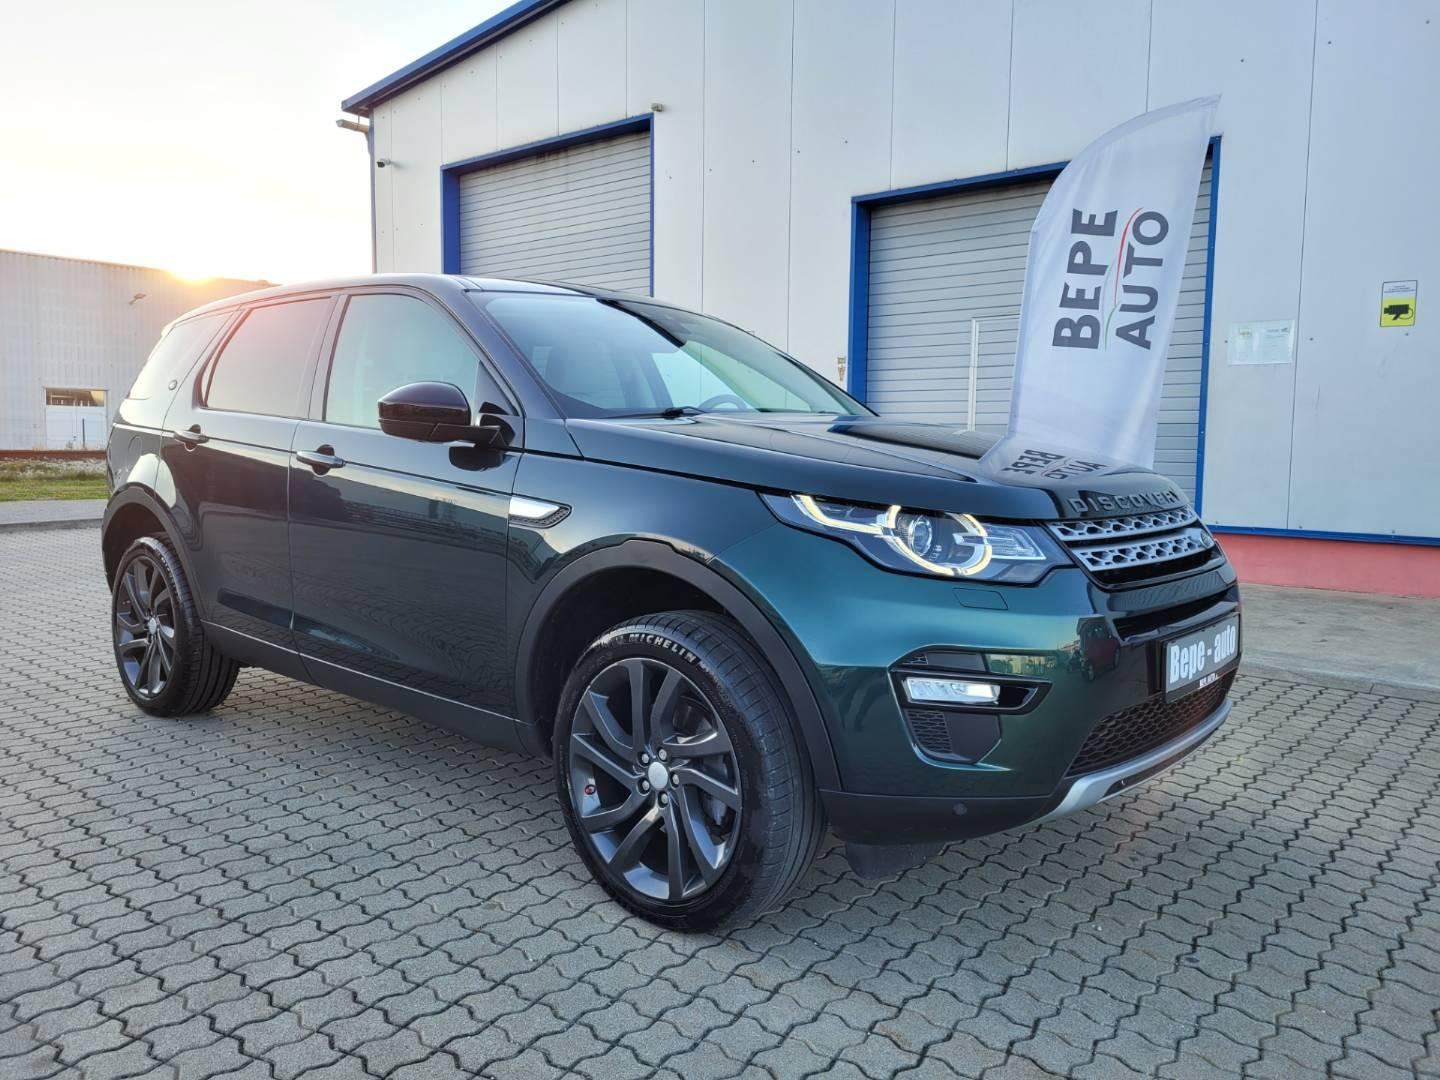 Land Rover Discovery Sport 2.2L SD4 HSE A/T